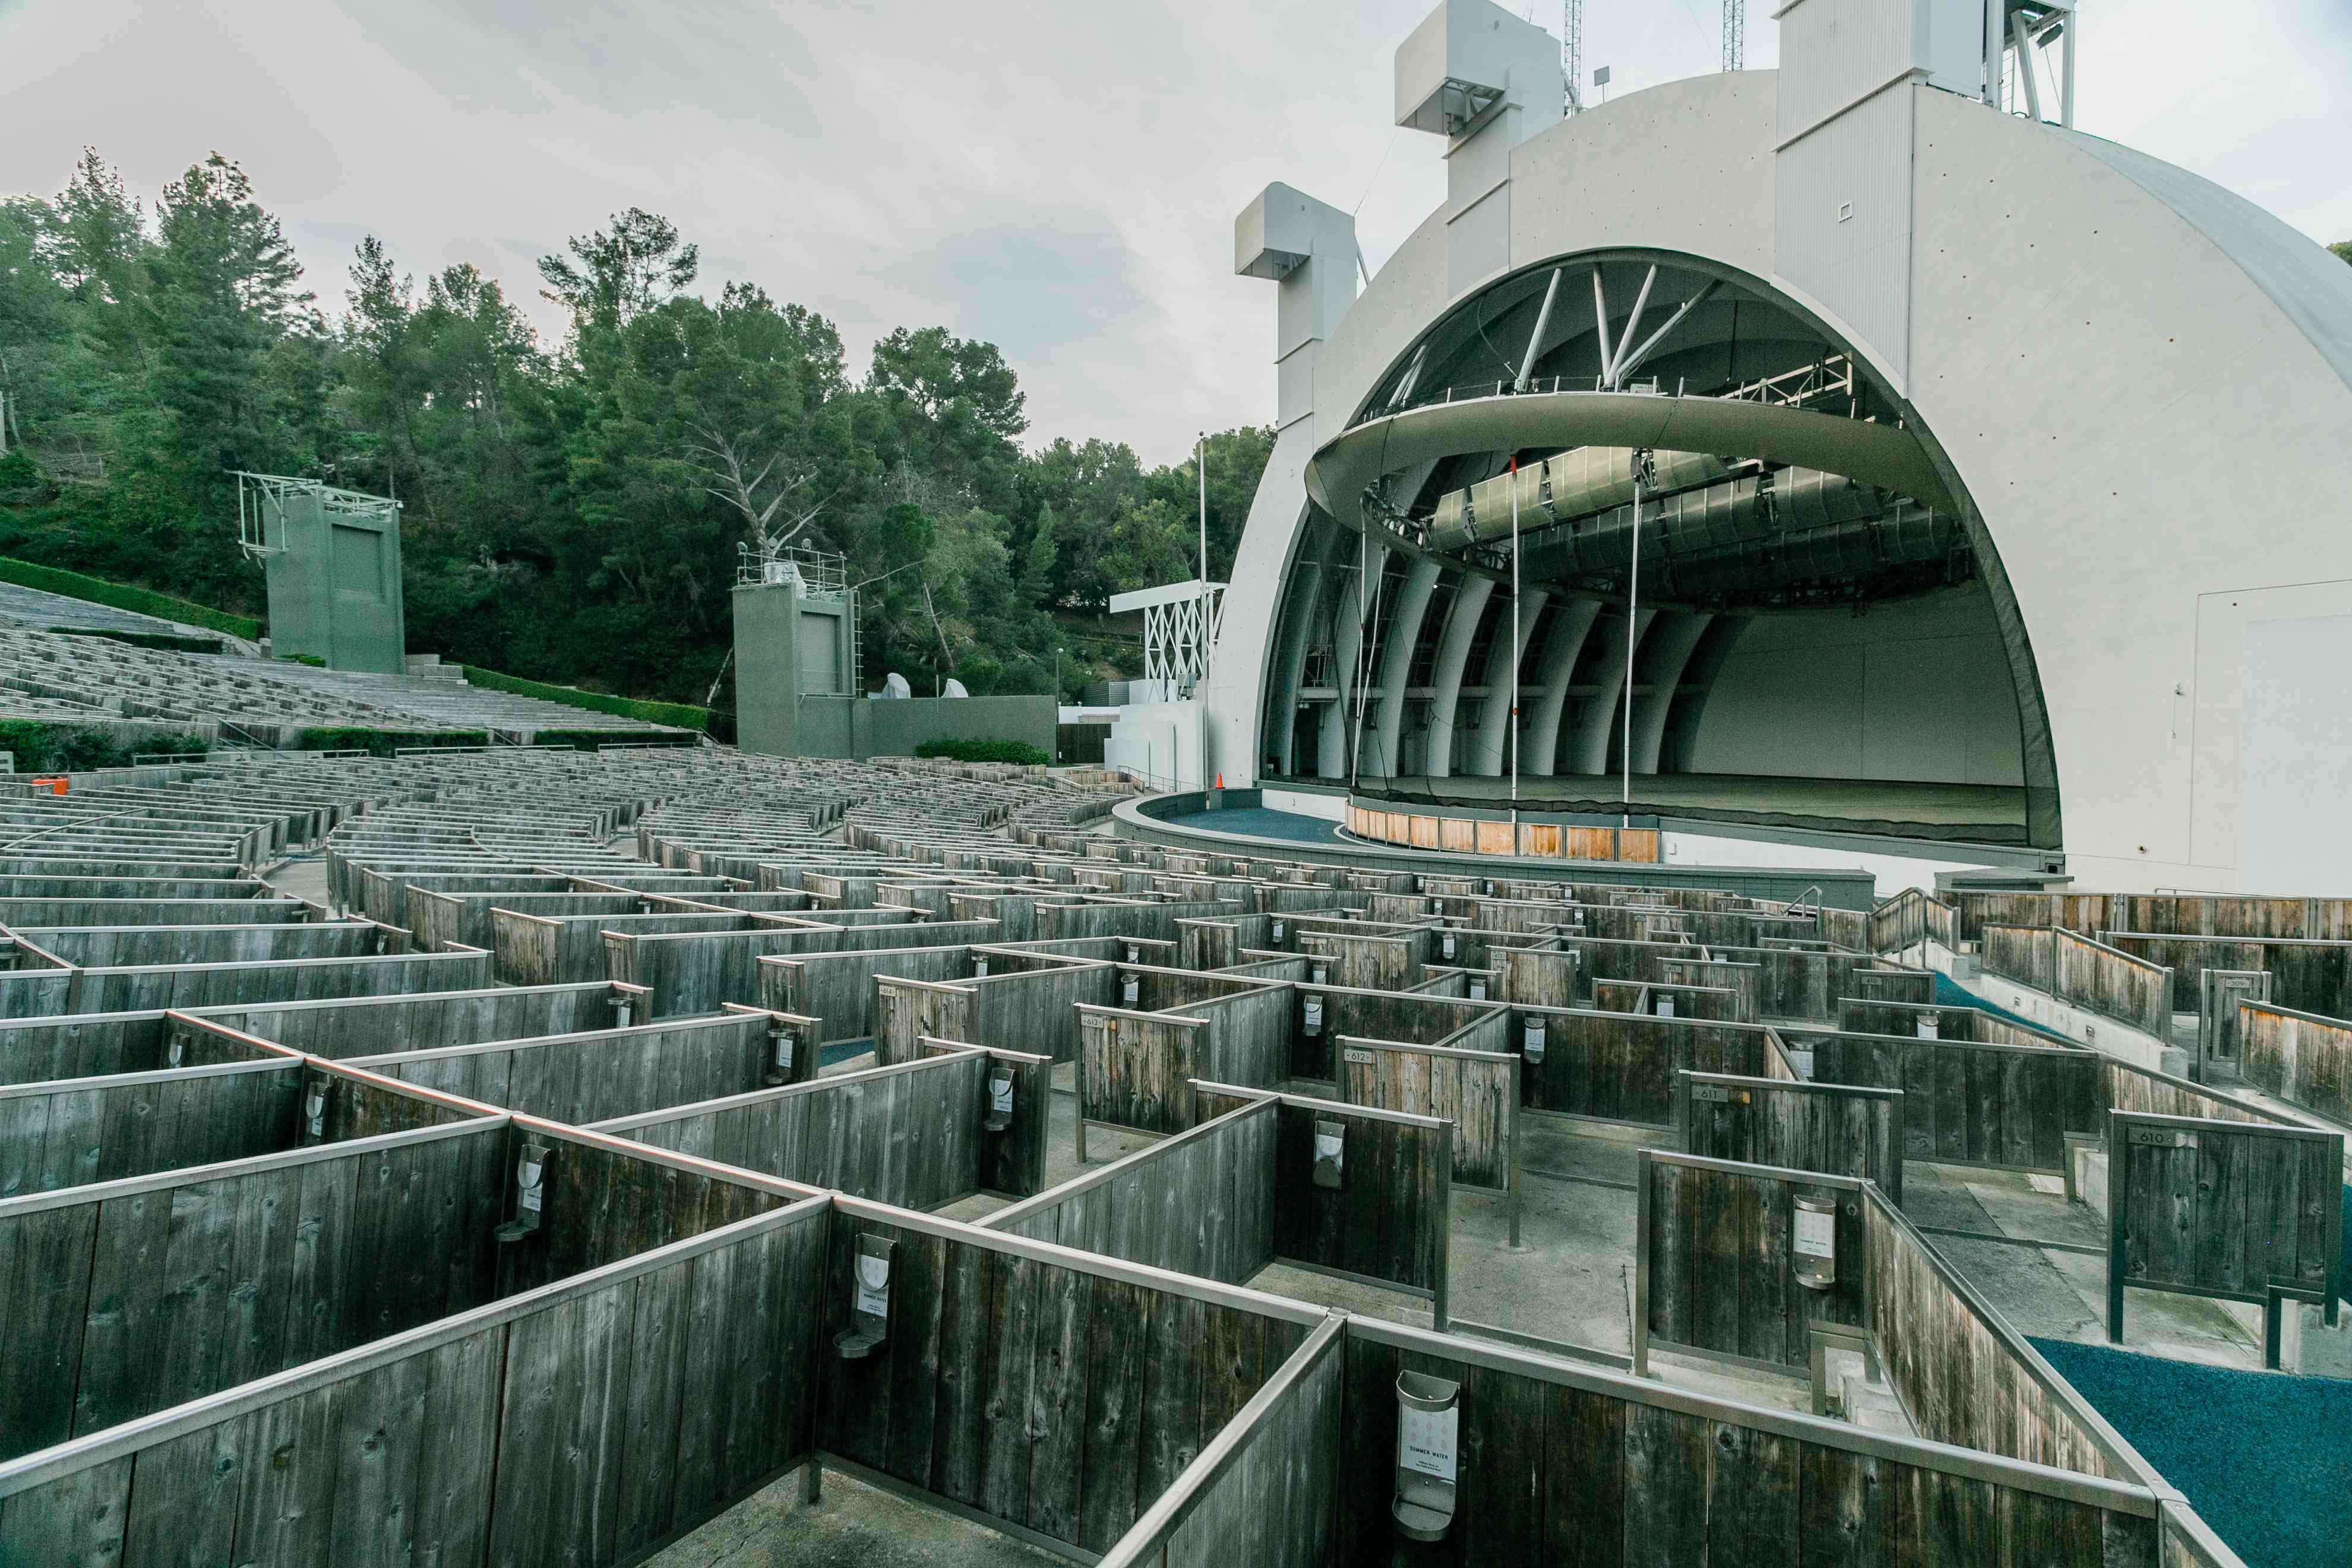 The Hollywood Bowl in Los Angeles, California